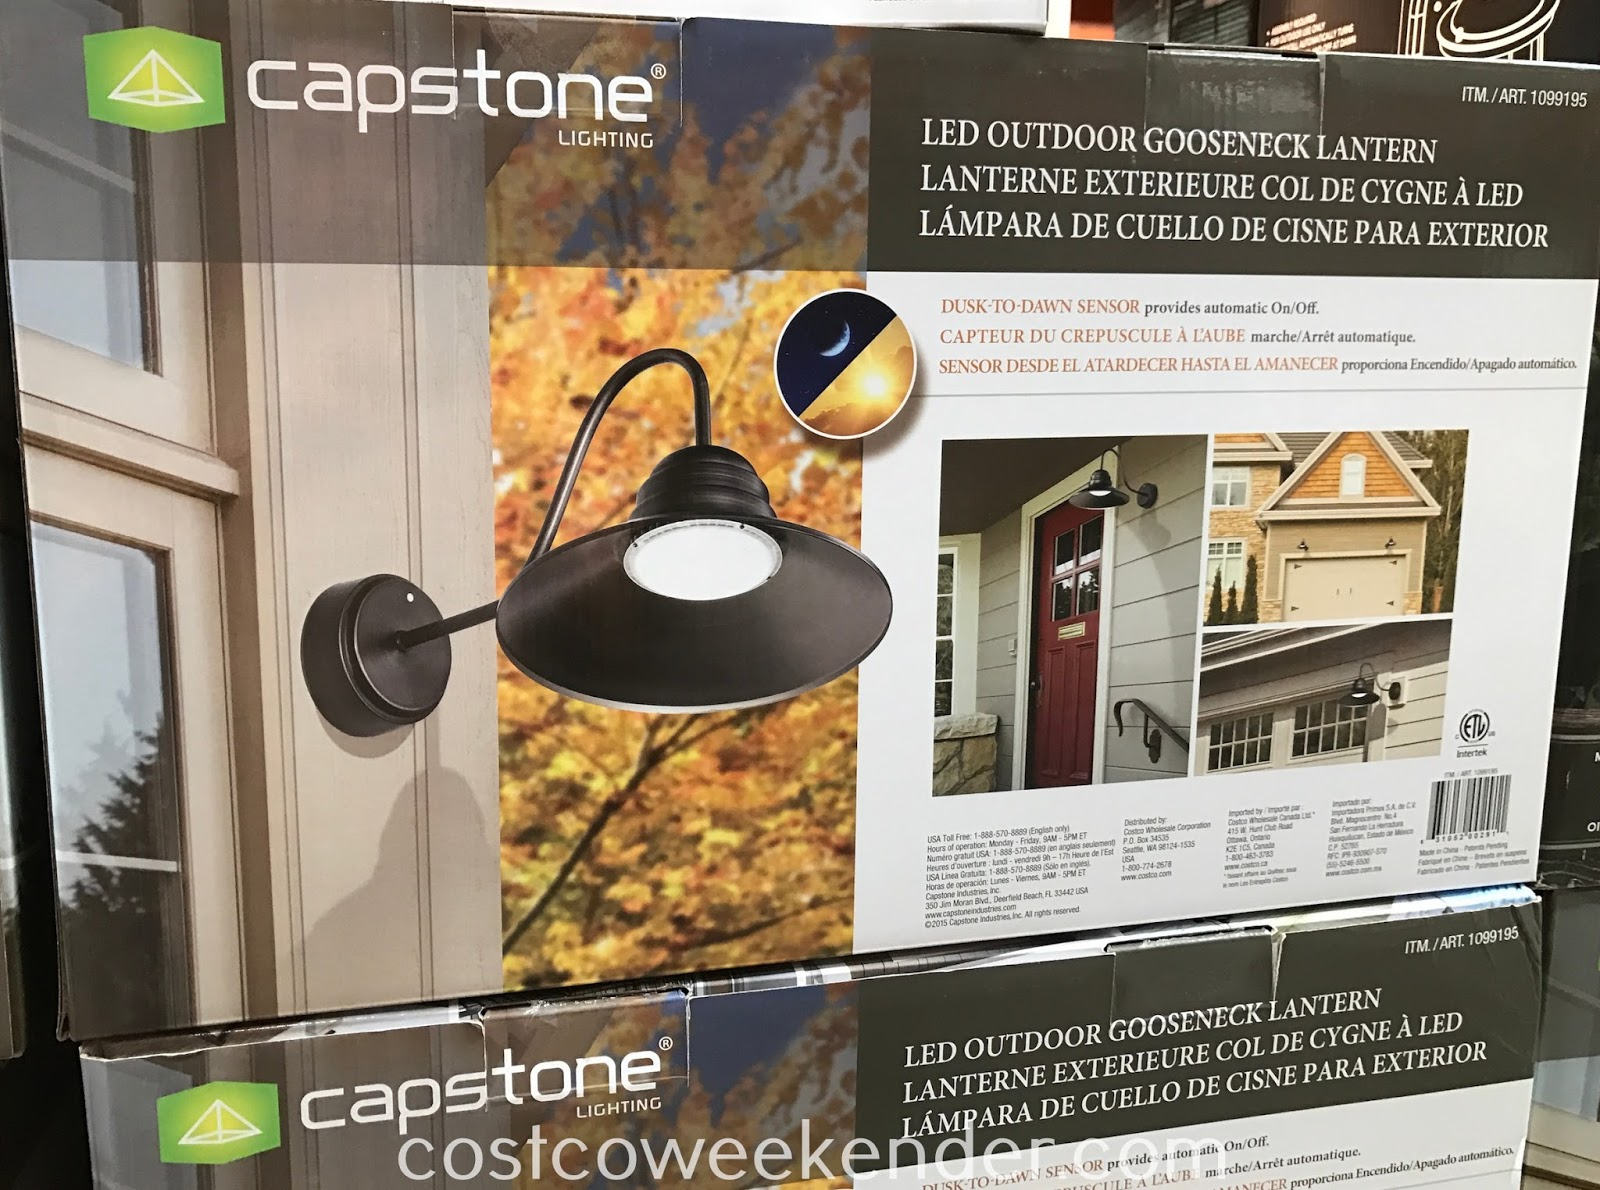 Ensure the outside of your house is well lit with the Capstone LED Outdoor Gooseneck Lantern